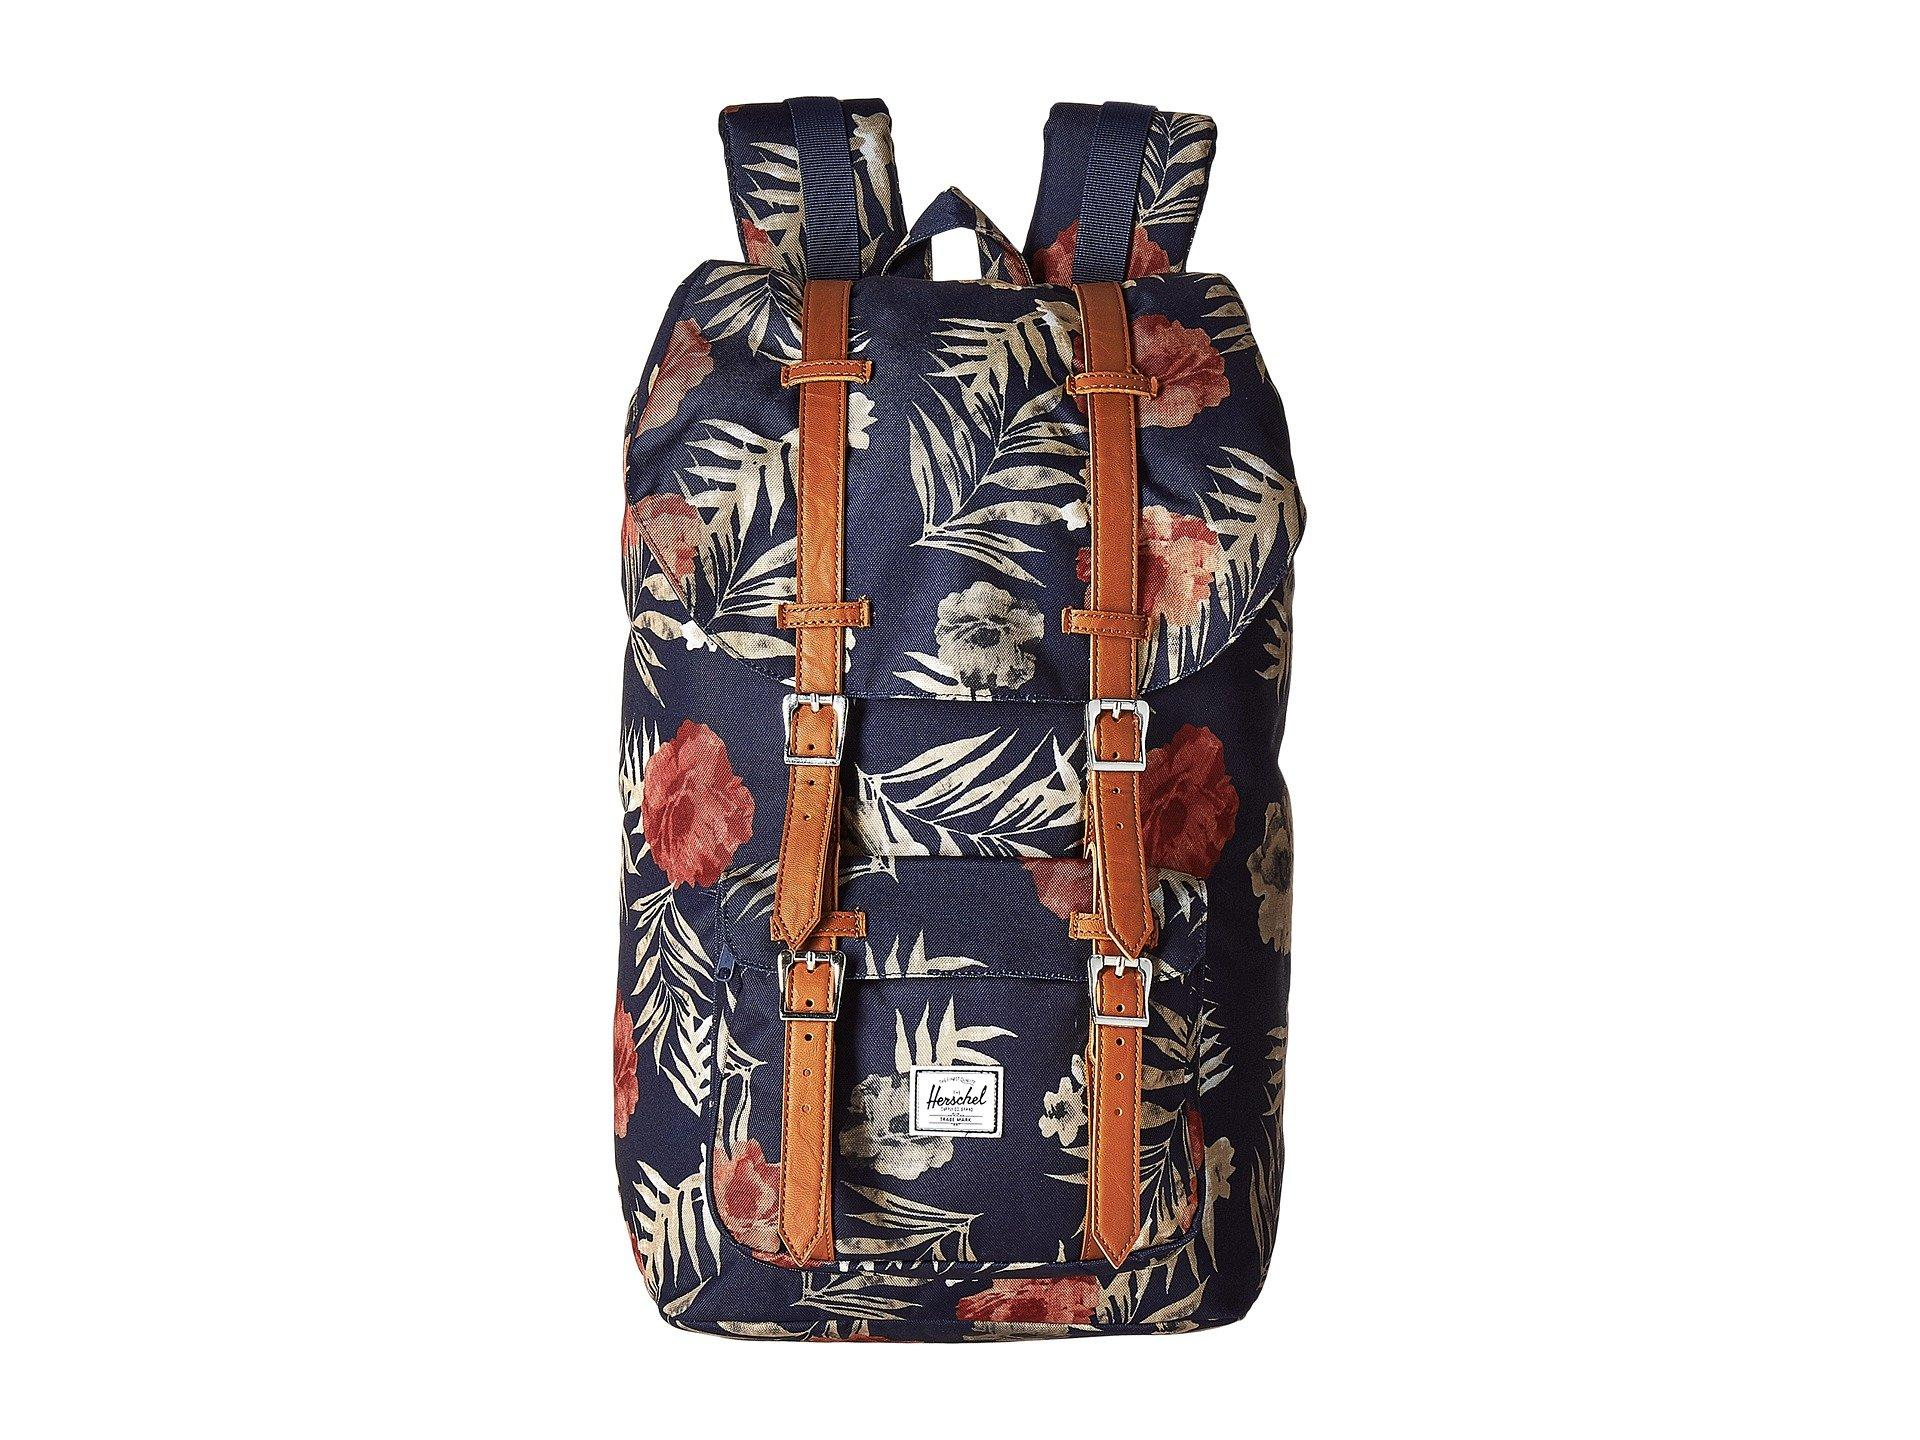 2a7f0901f06 Herschel Supply Co. Little America In Peacoat Floria Tan Synthetic Leather